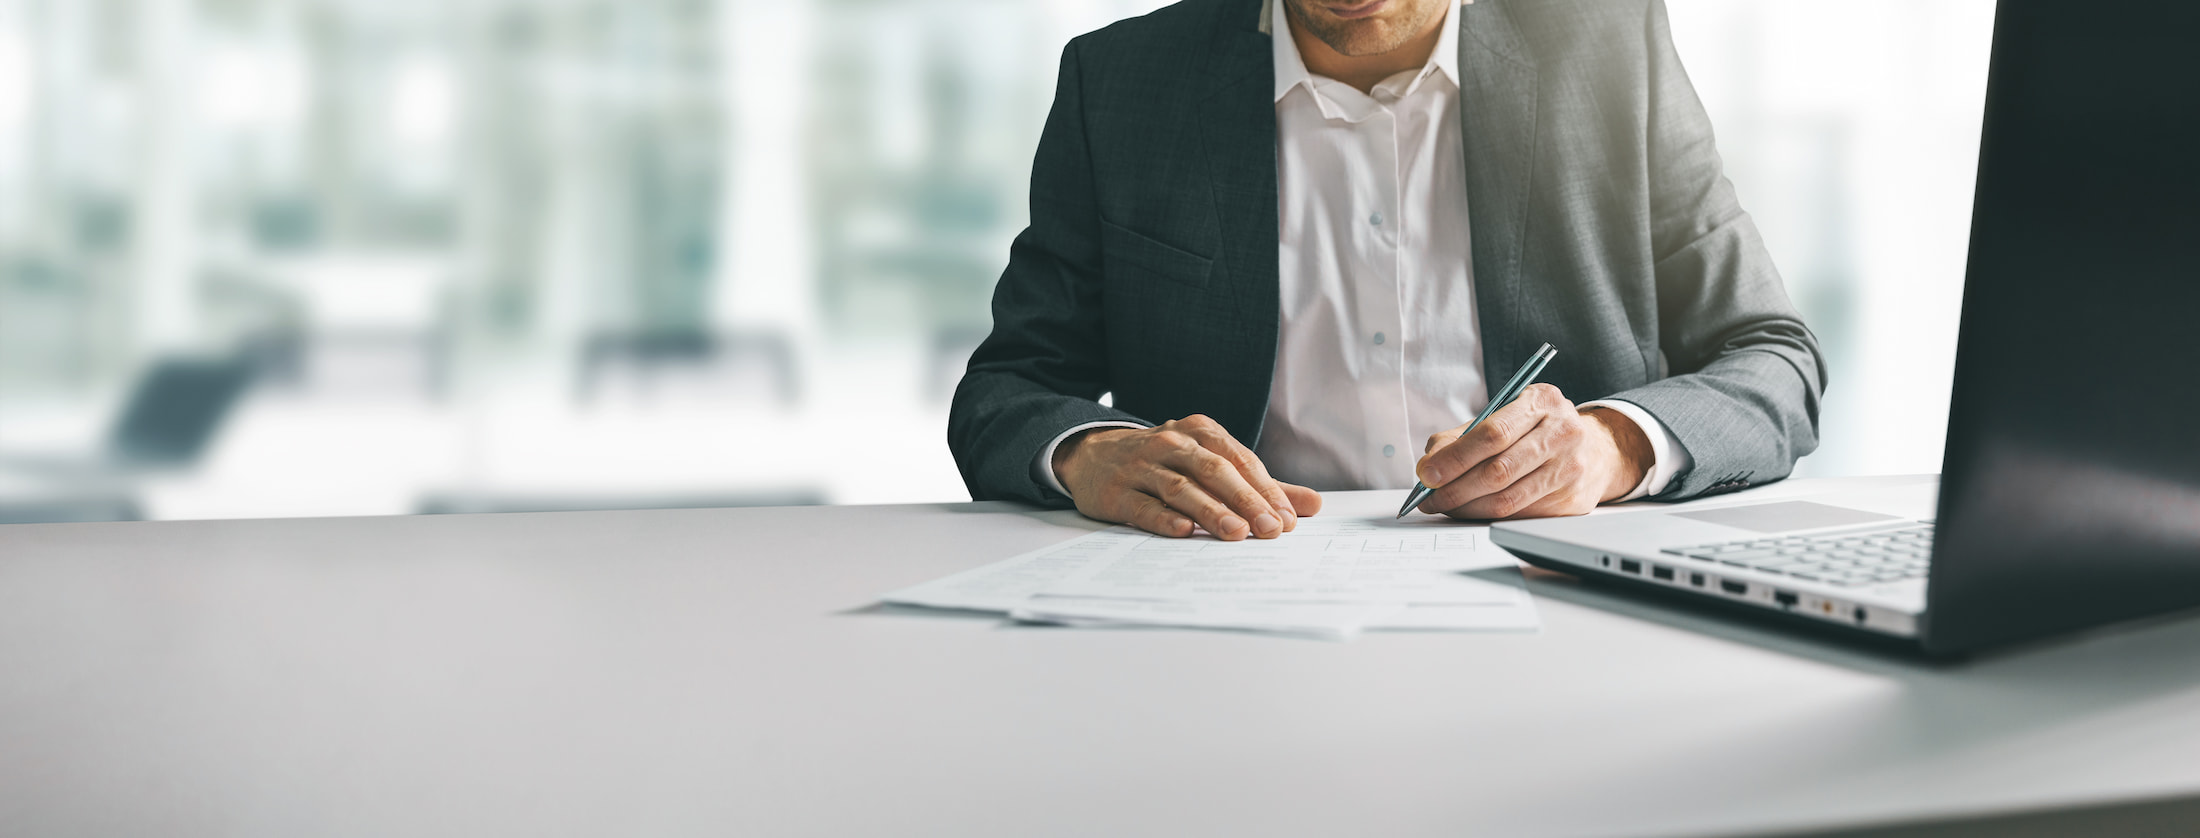 Image of a man signing documents